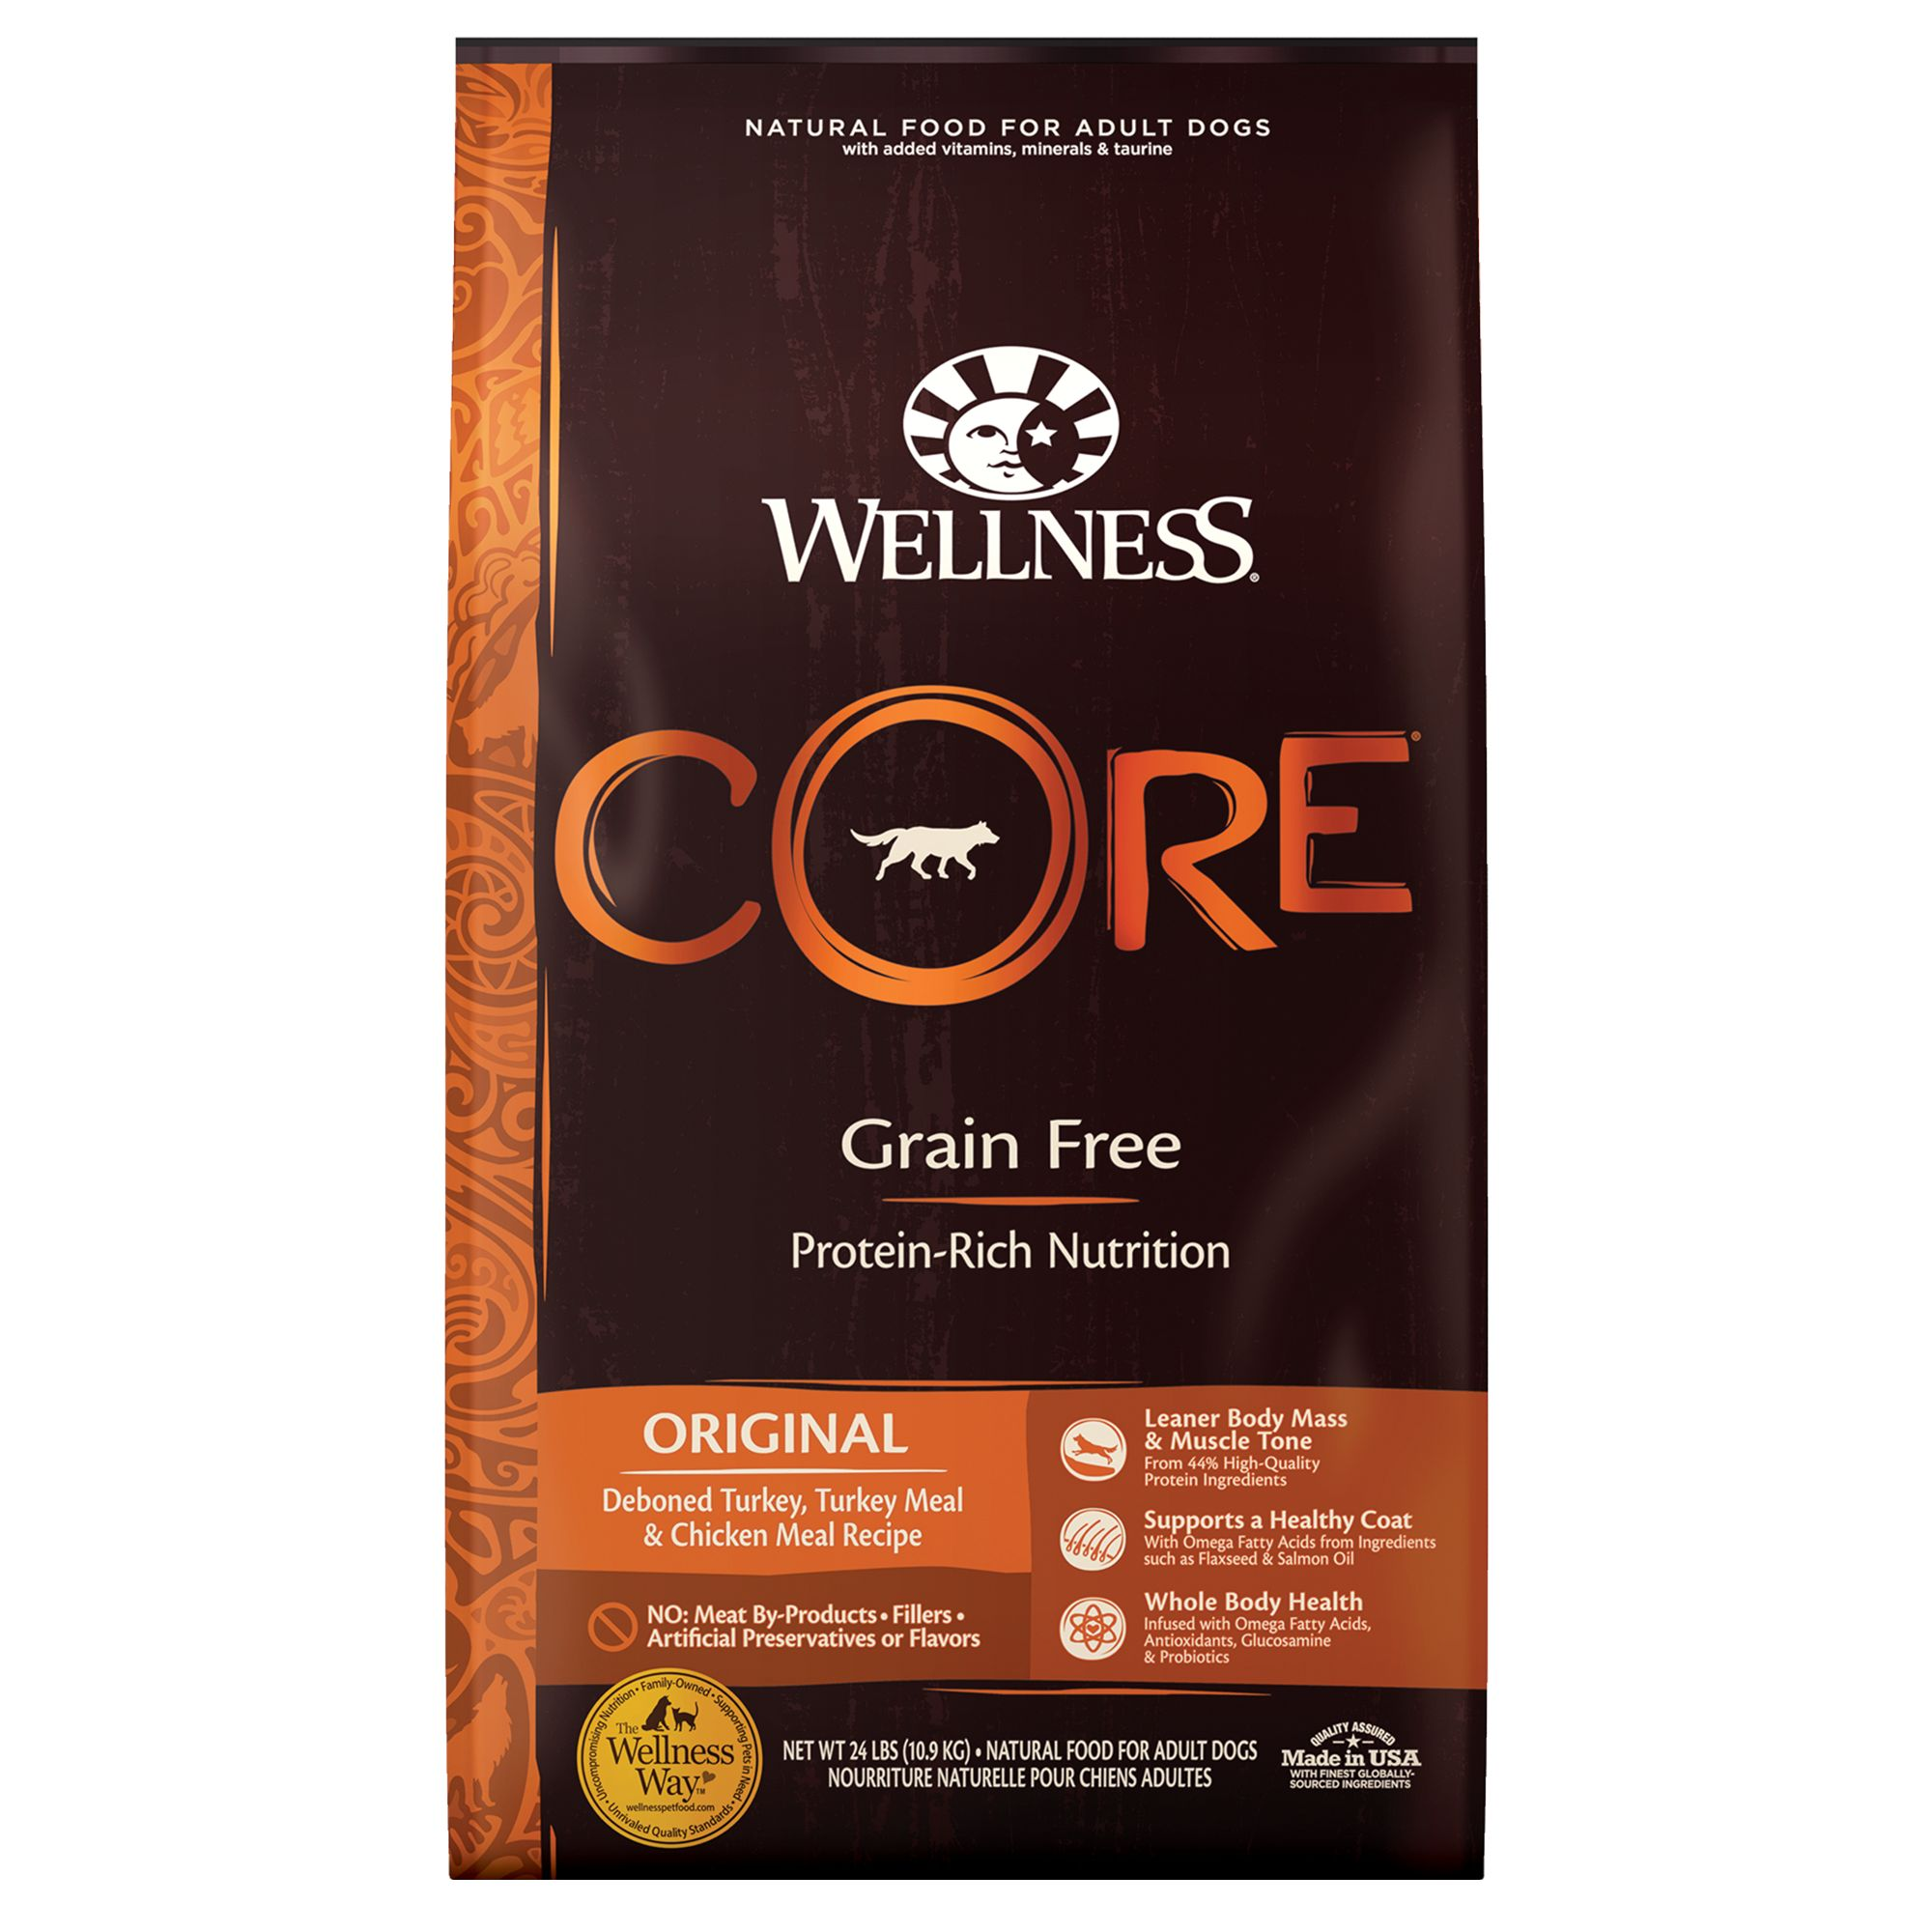 Wellness® Core® Adult Dog Food - Natural, Grain Free, Original Formula size: 24 Lb 5249049